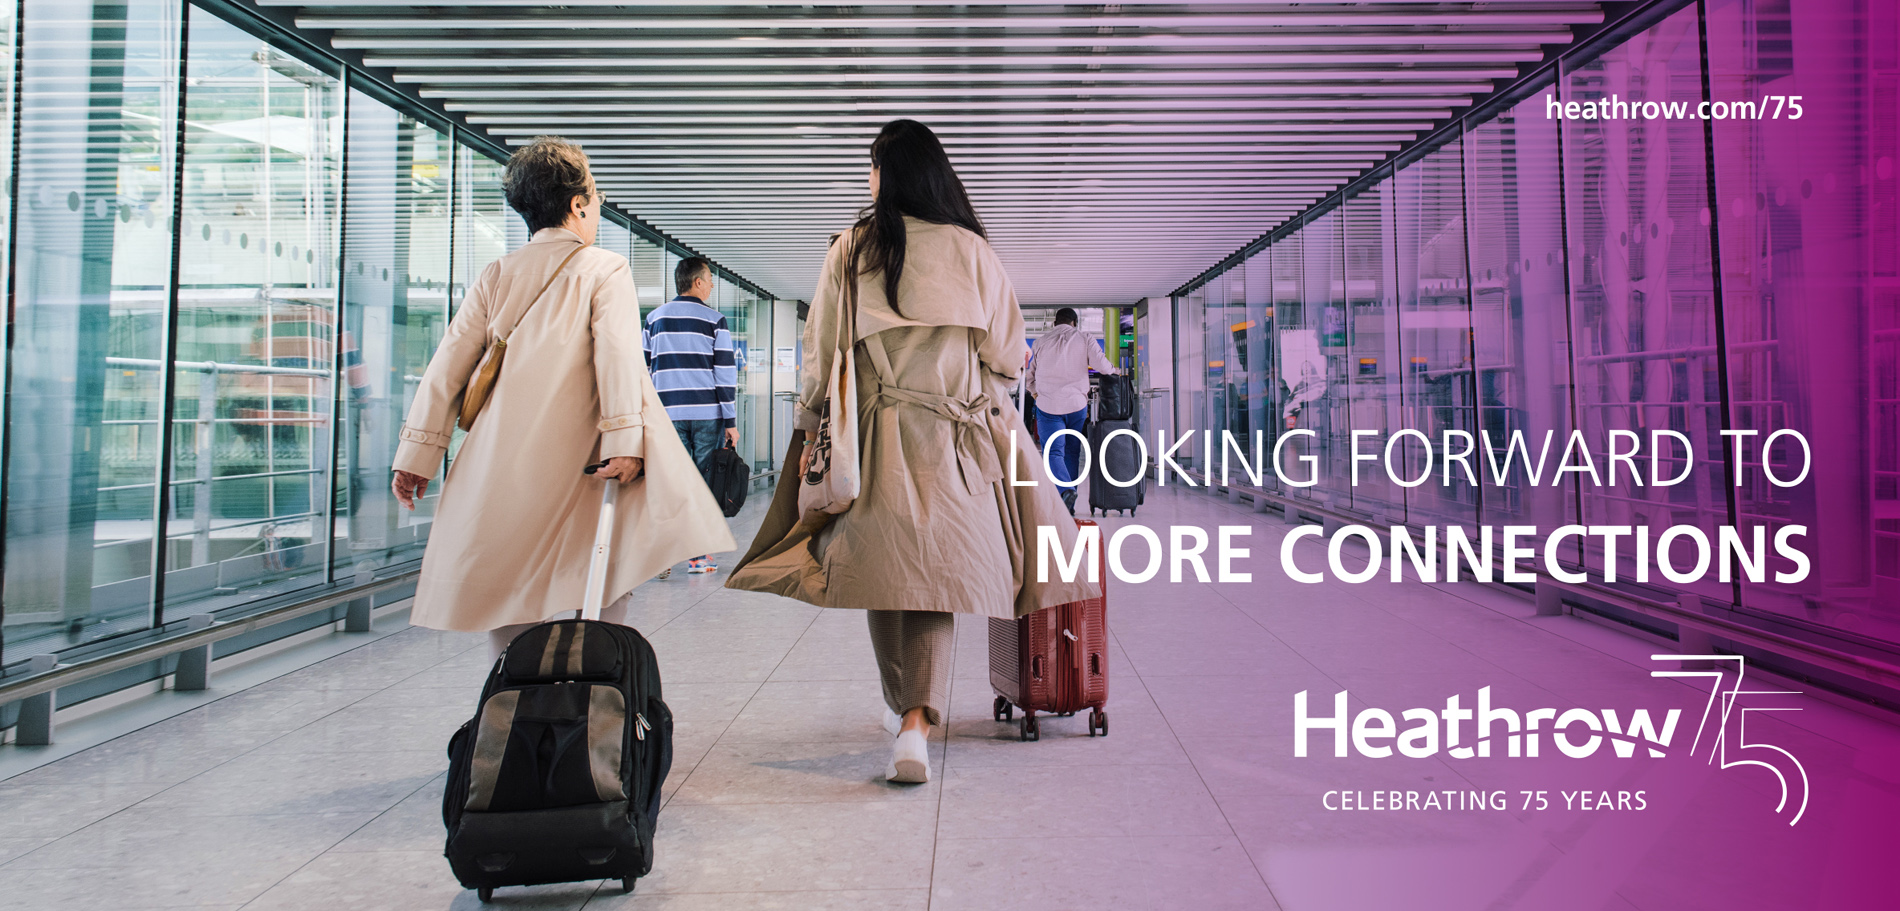 Heathrow Poster Connections